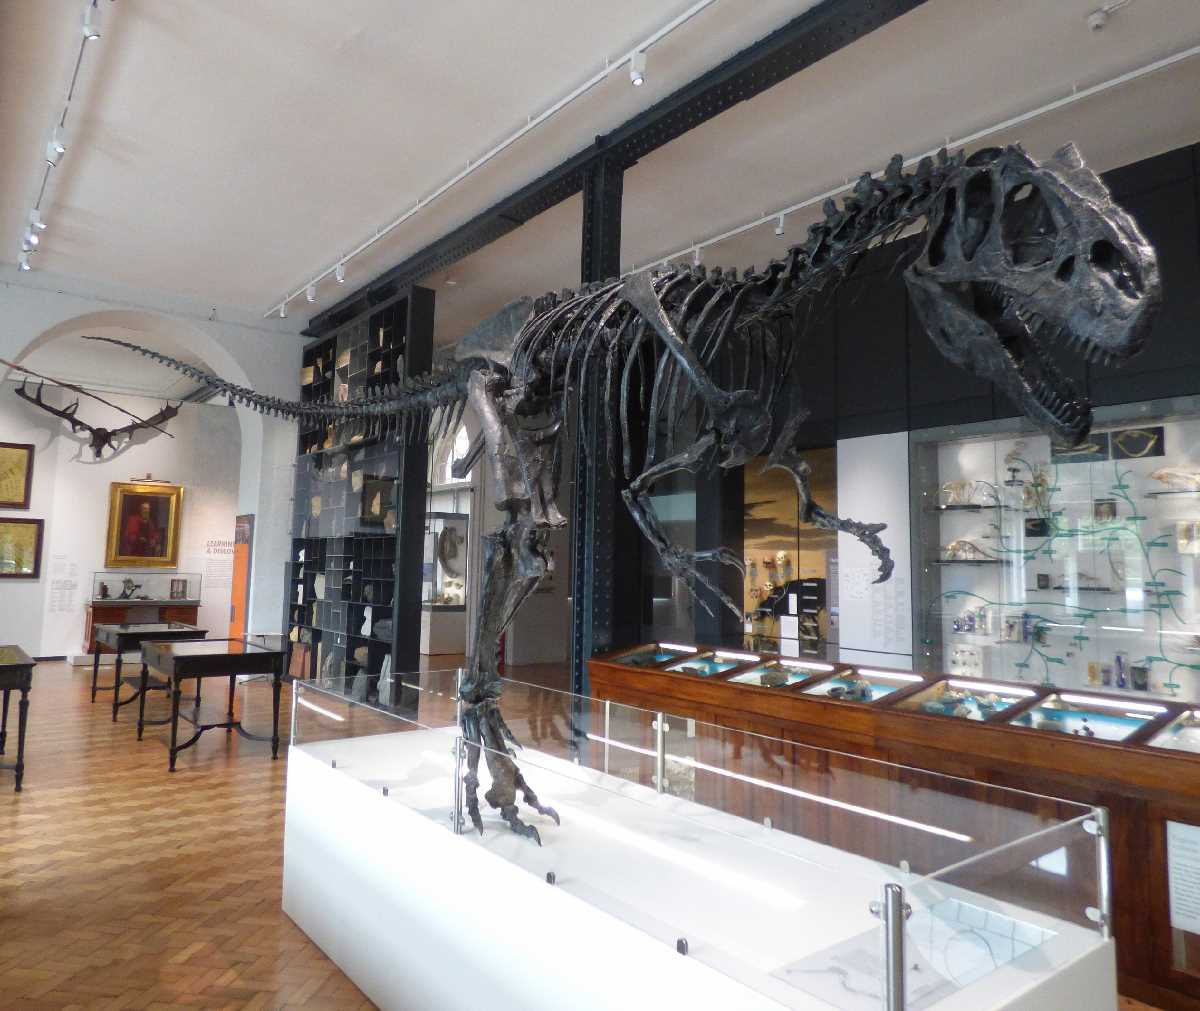 The Lapworth Museum of Geology at the University of Birmingham